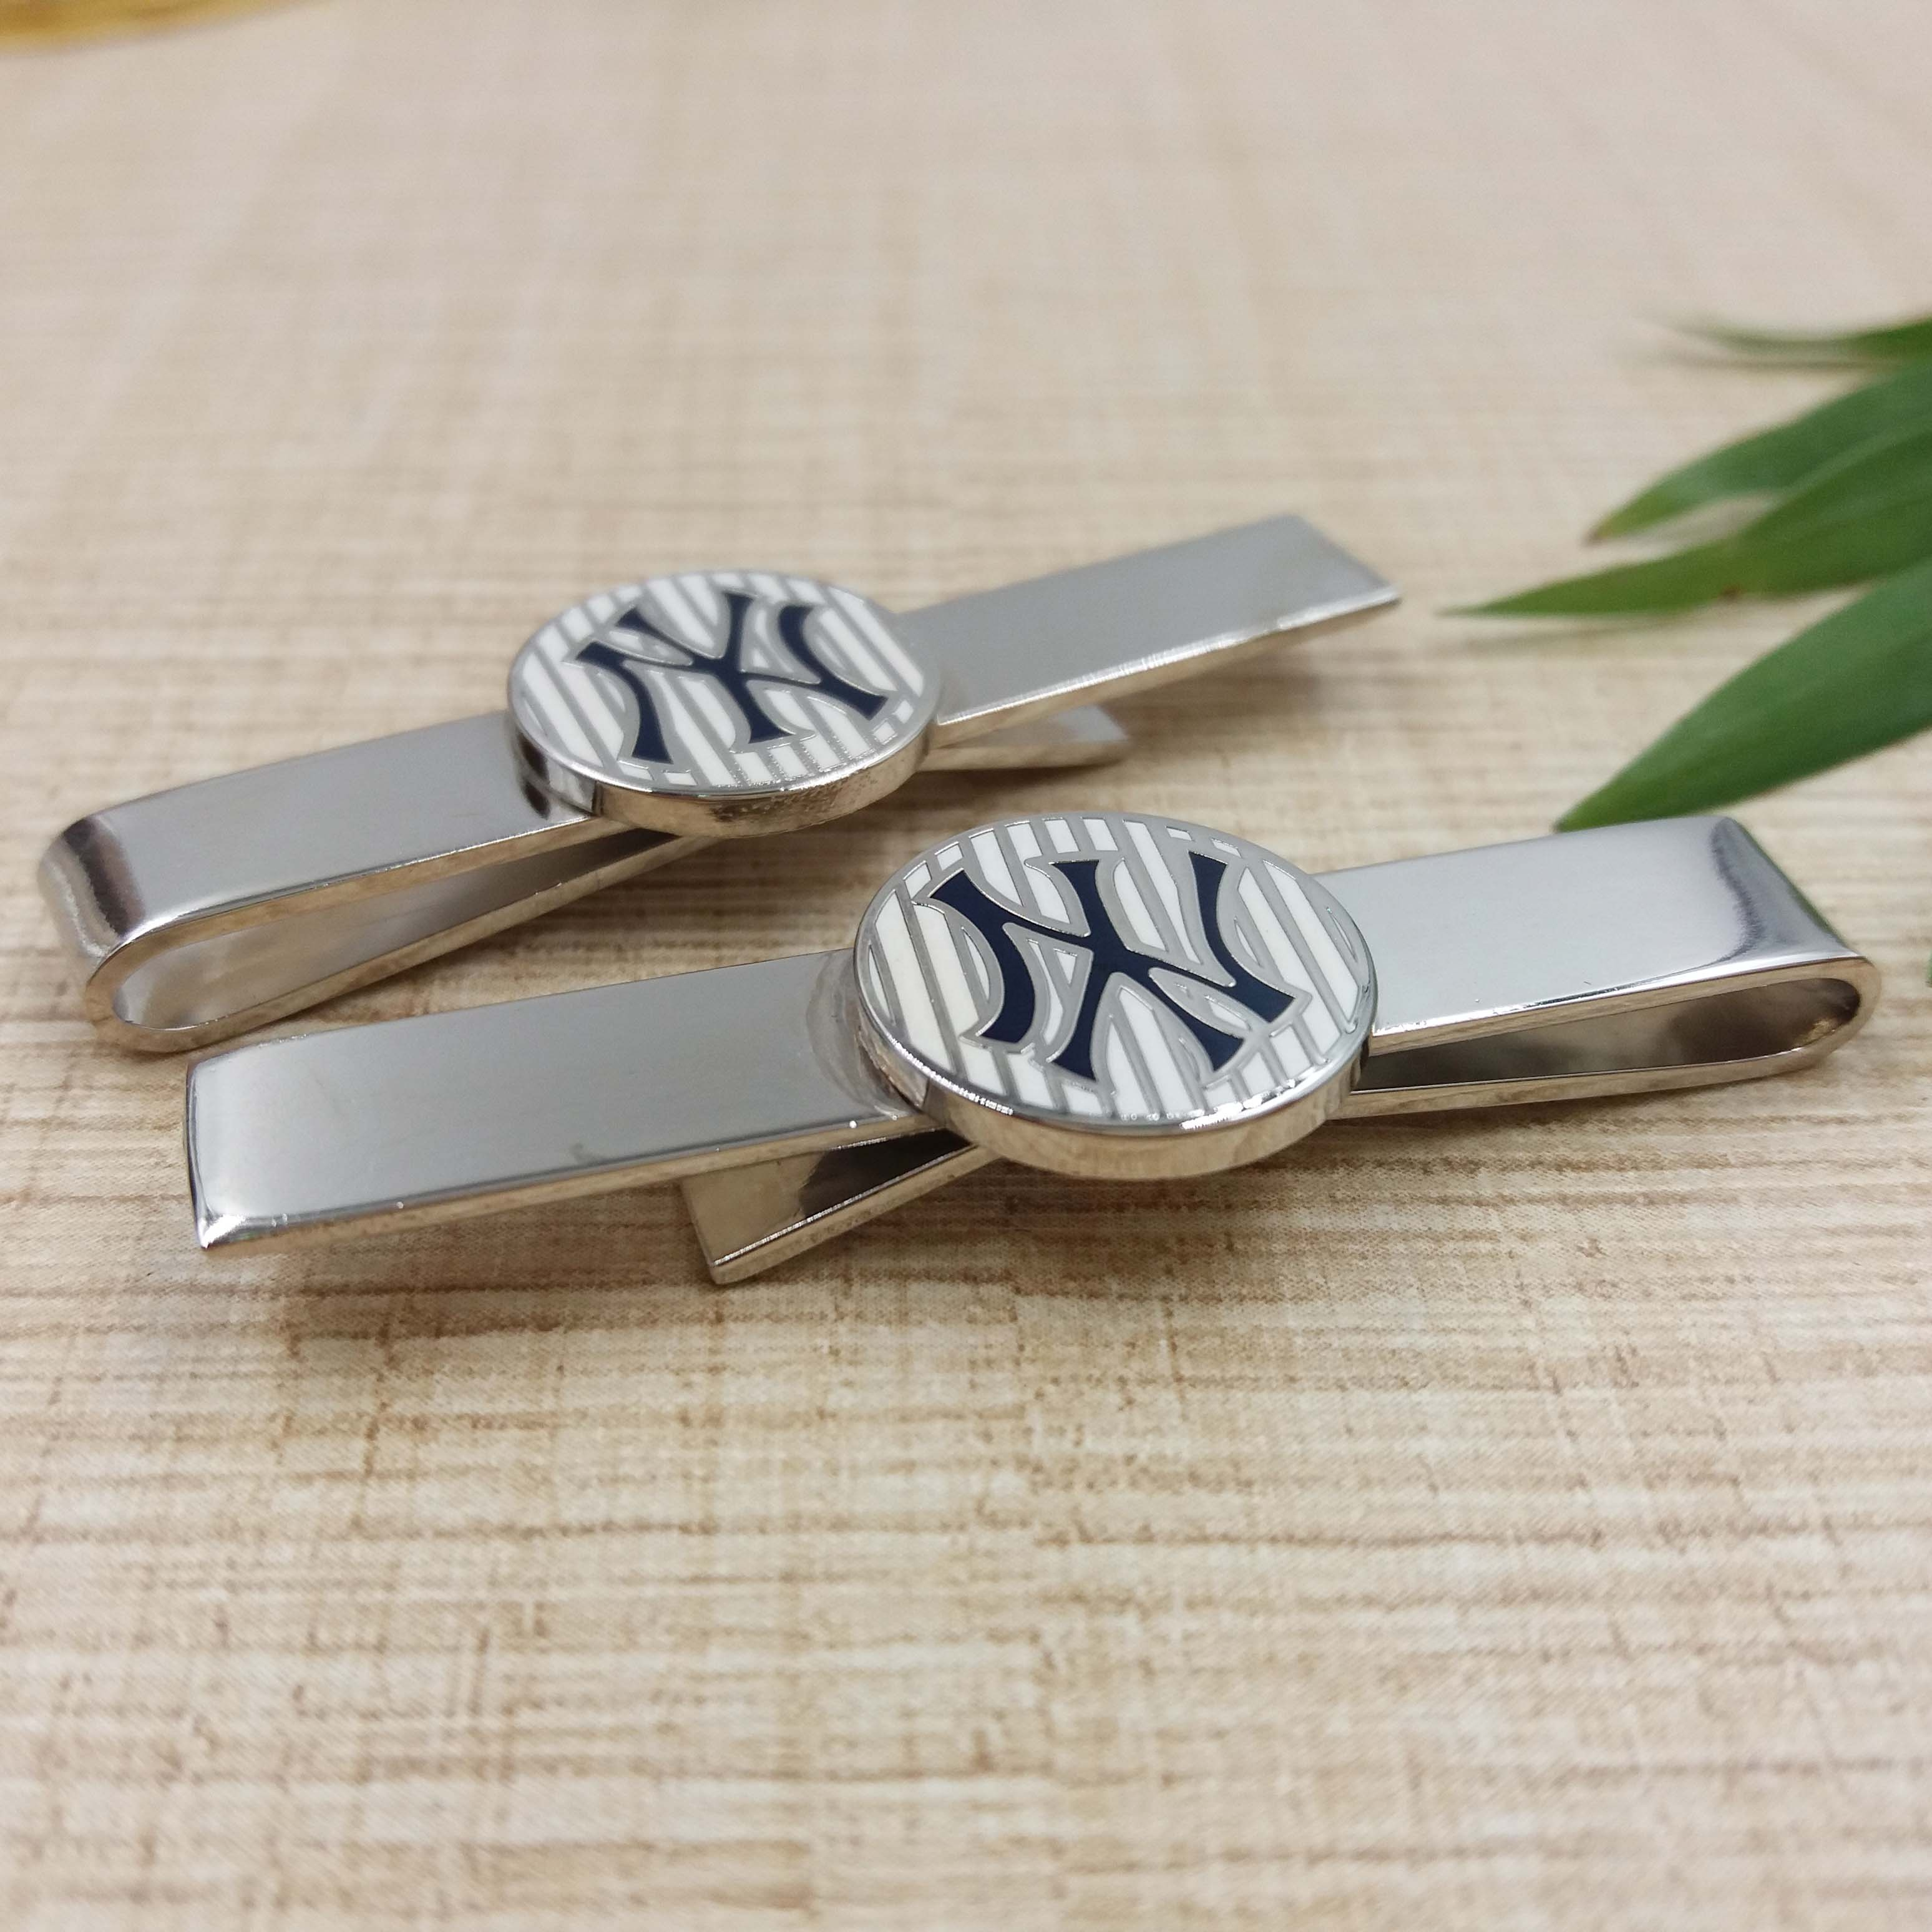 Custom cuff links and tie clip sets,Hot selling clip on neck tie with clip